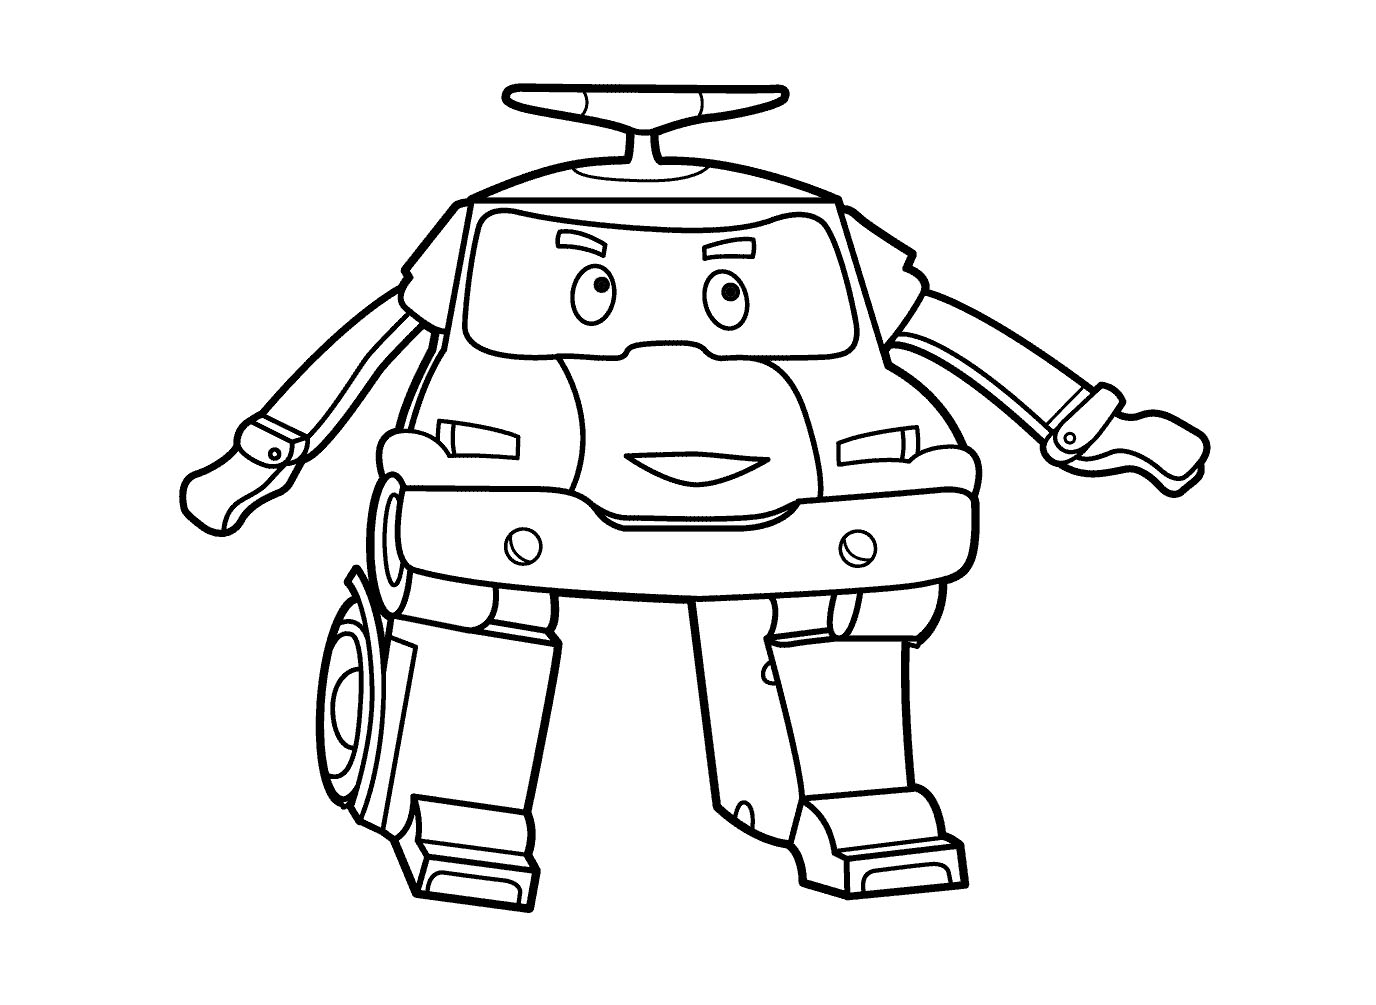 Easy free Robocar Poli coloring page to download